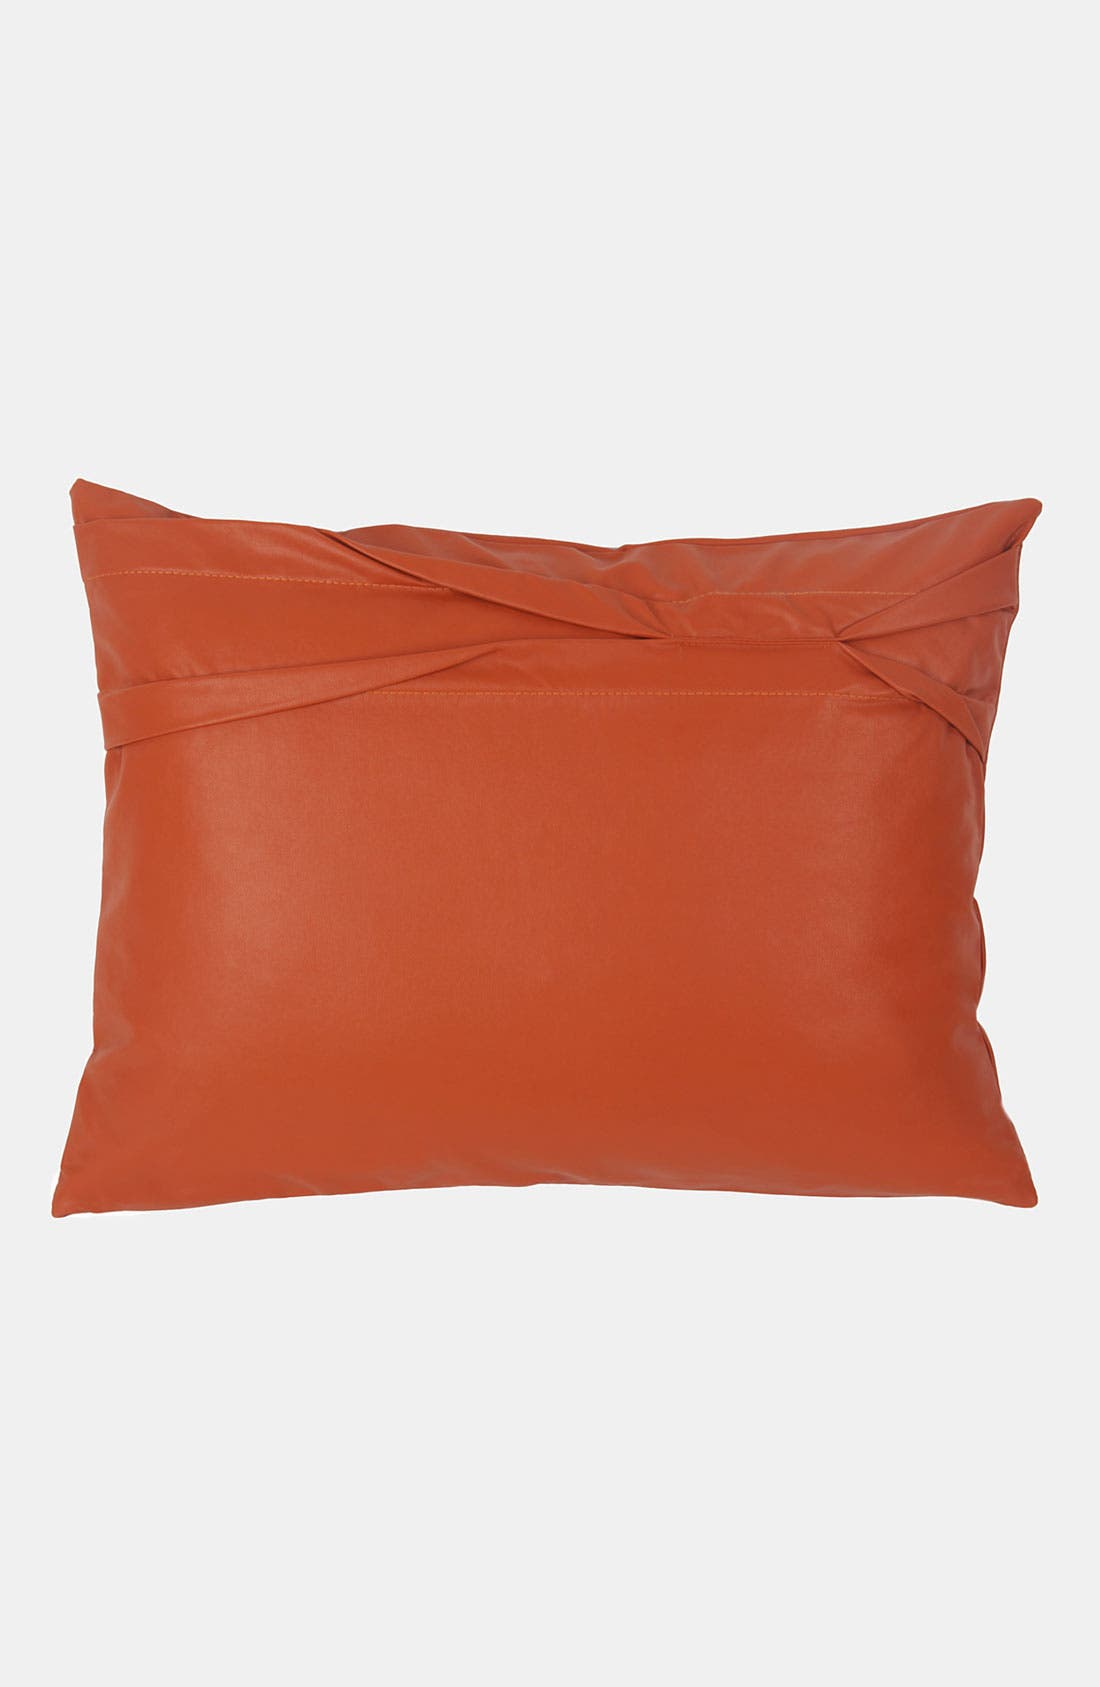 Alternate Image 1 Selected - Blissliving Home 'Theo - Persimmon' Faux Leather Pillow (Online Only)